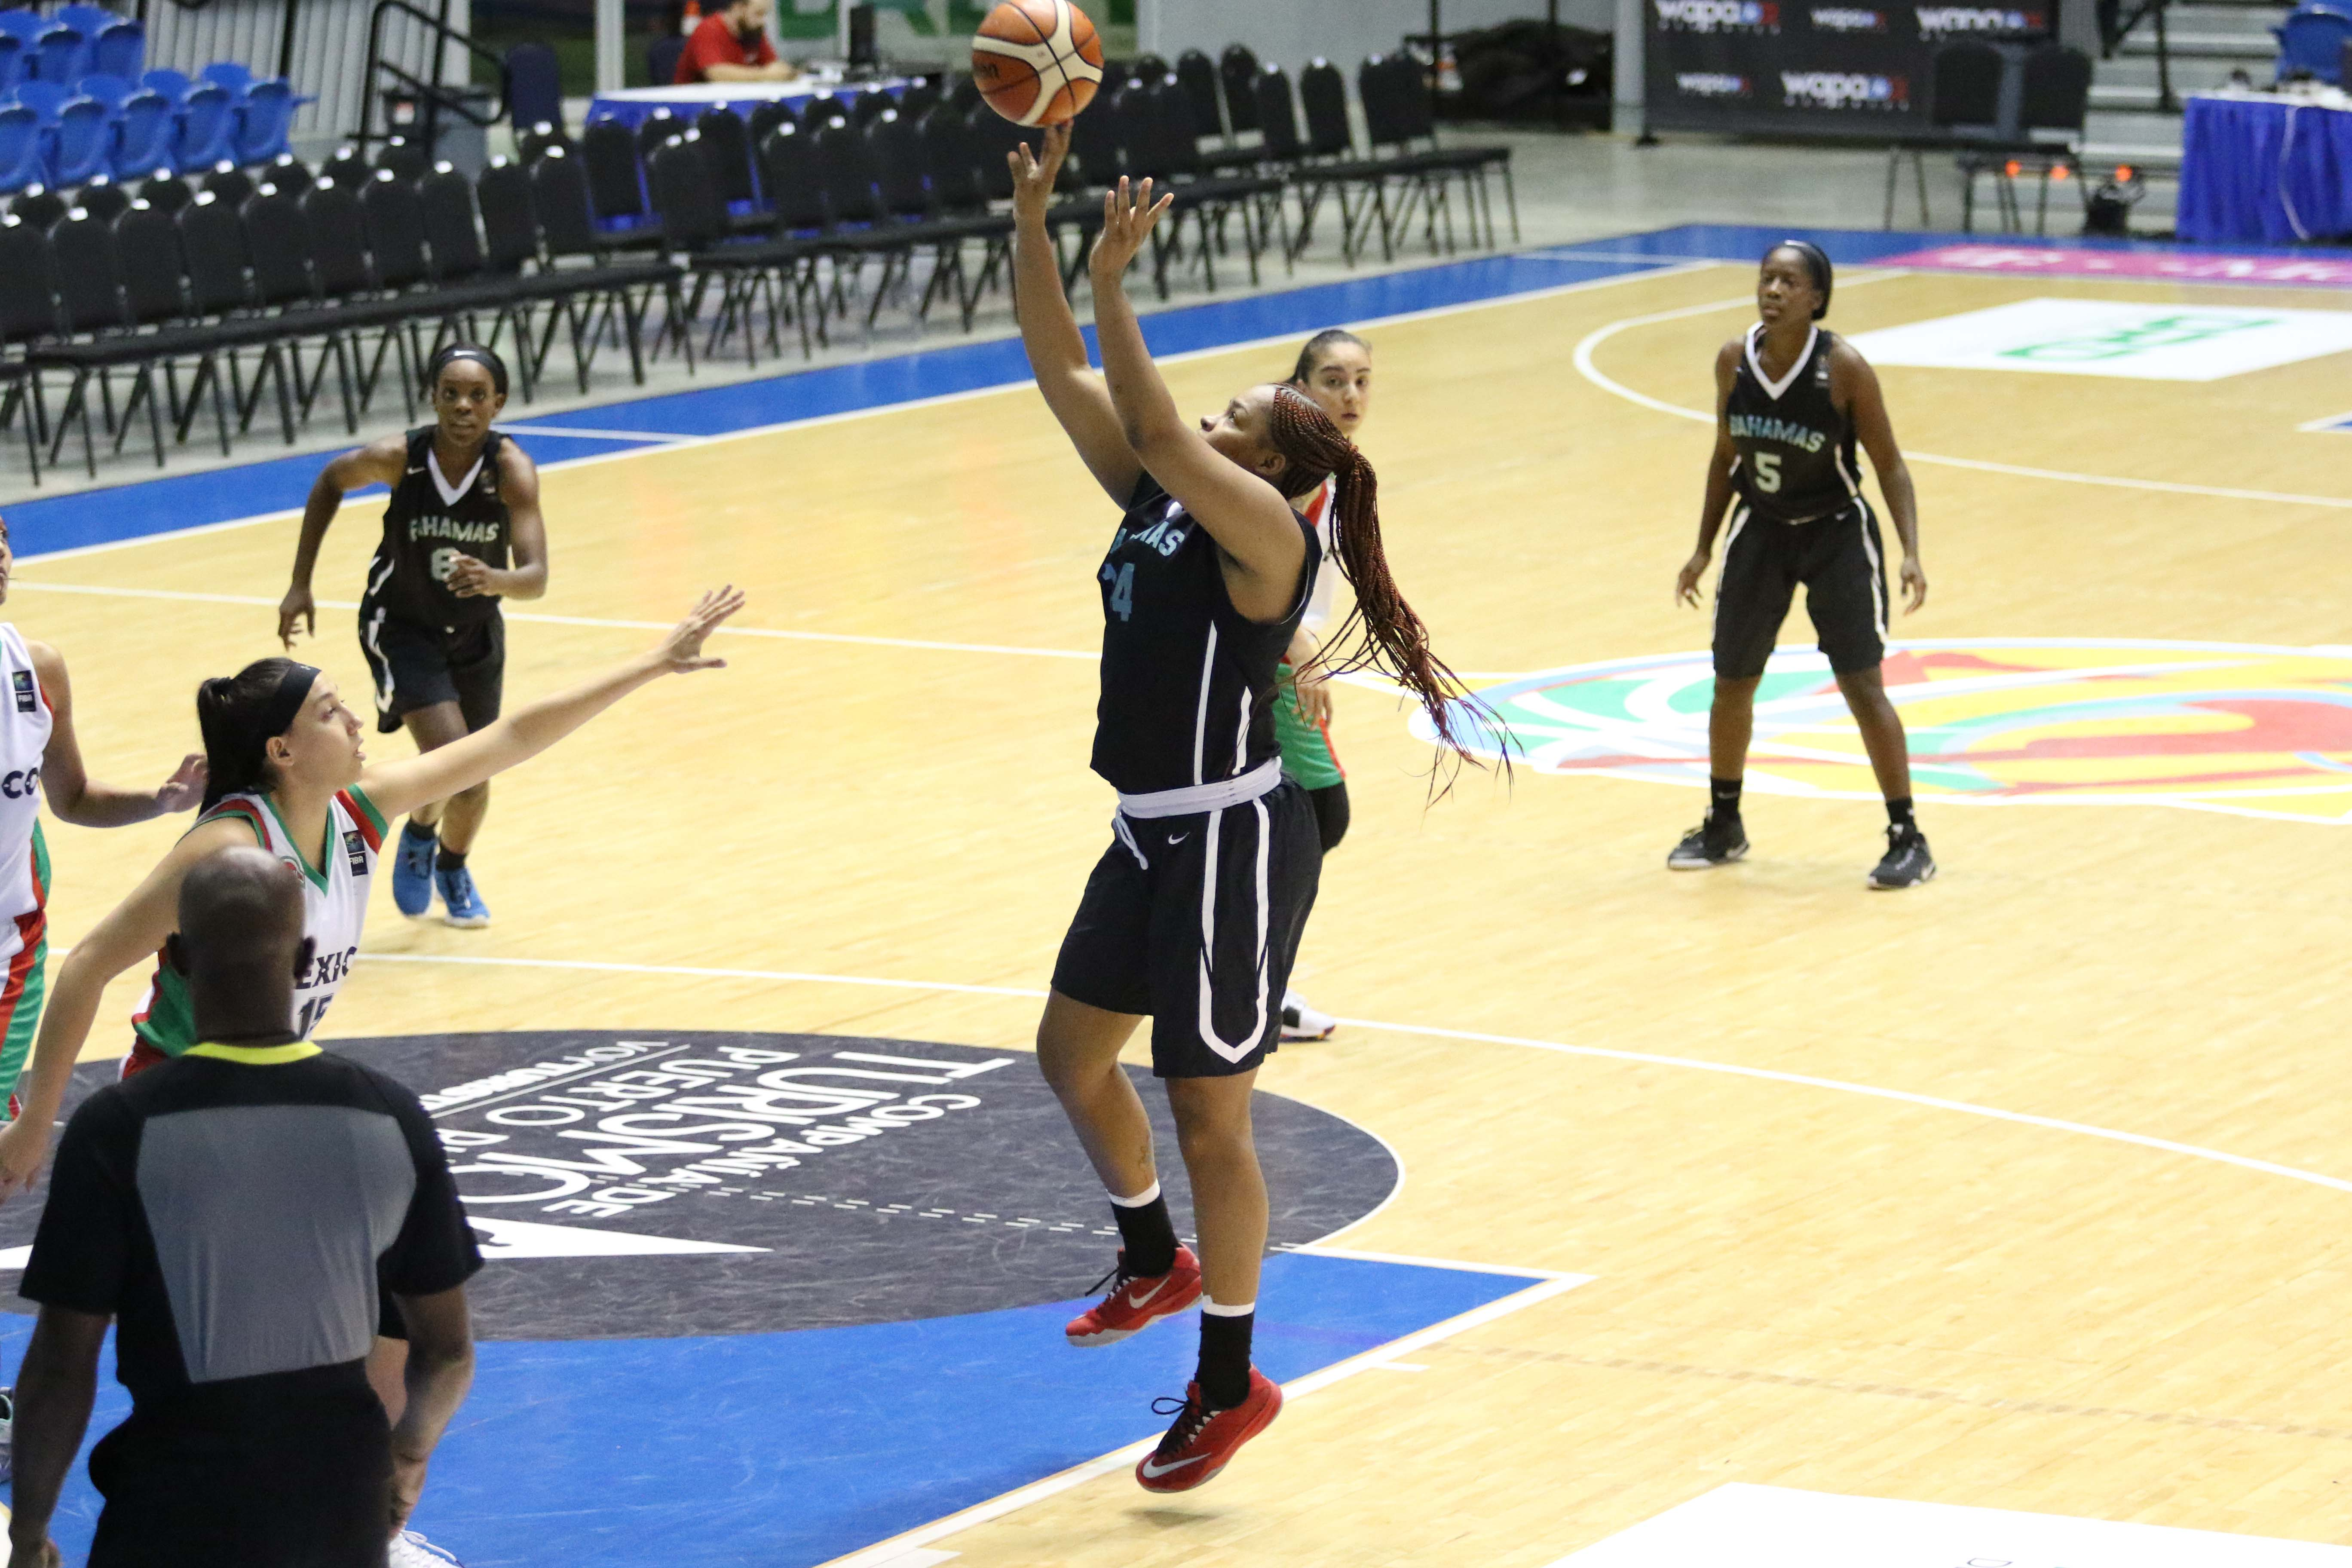 Bahamas gets first win at Centrobasket